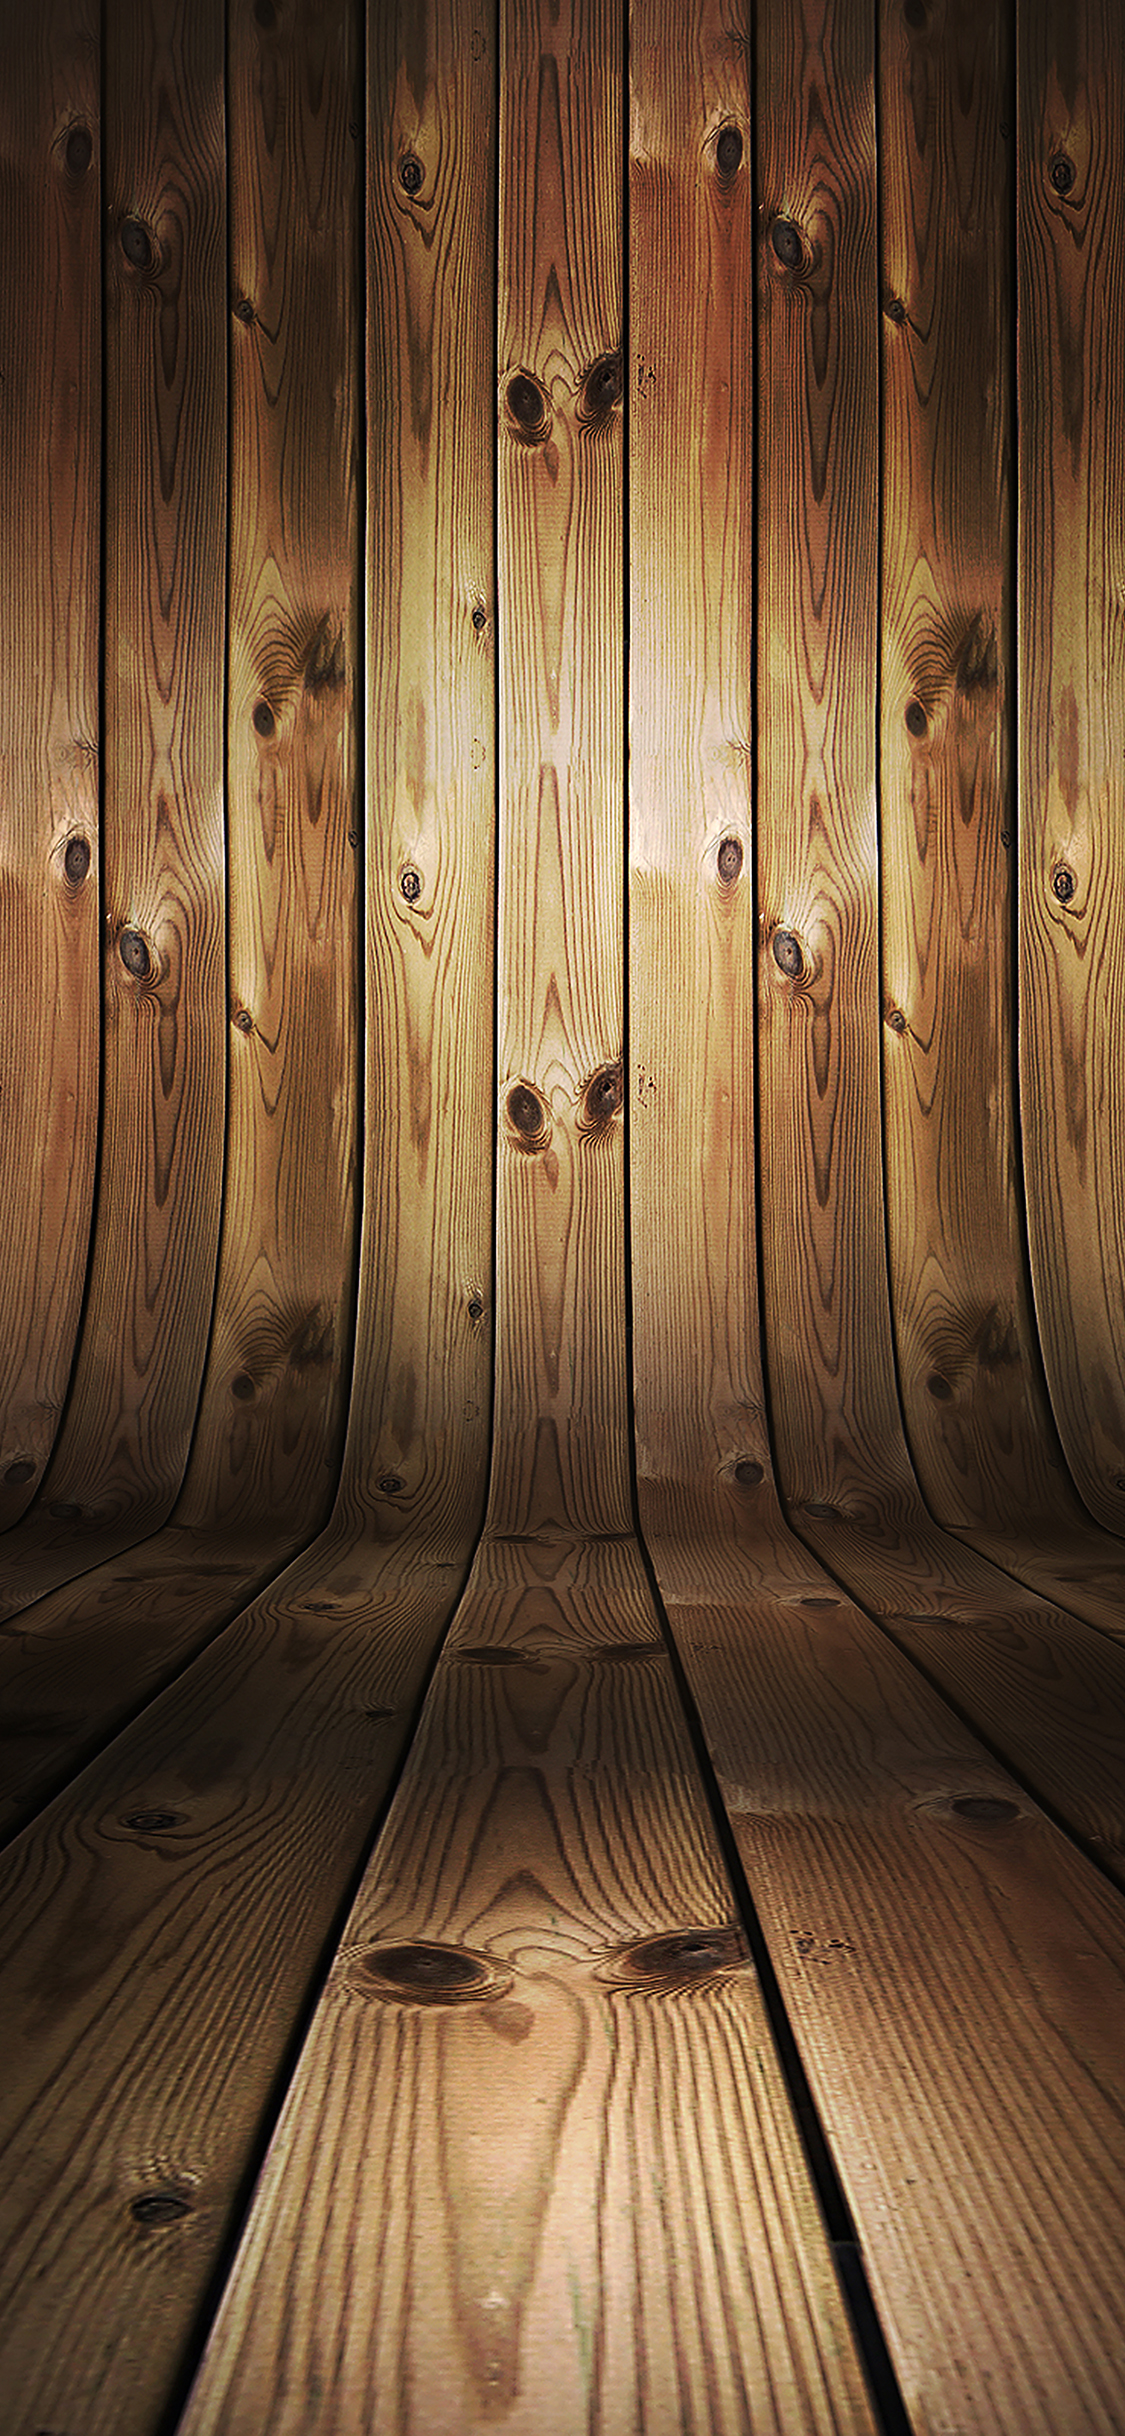 iPhoneXpapers.com-Apple-iPhone-wallpaper-ae14-dark-bent-wood-background